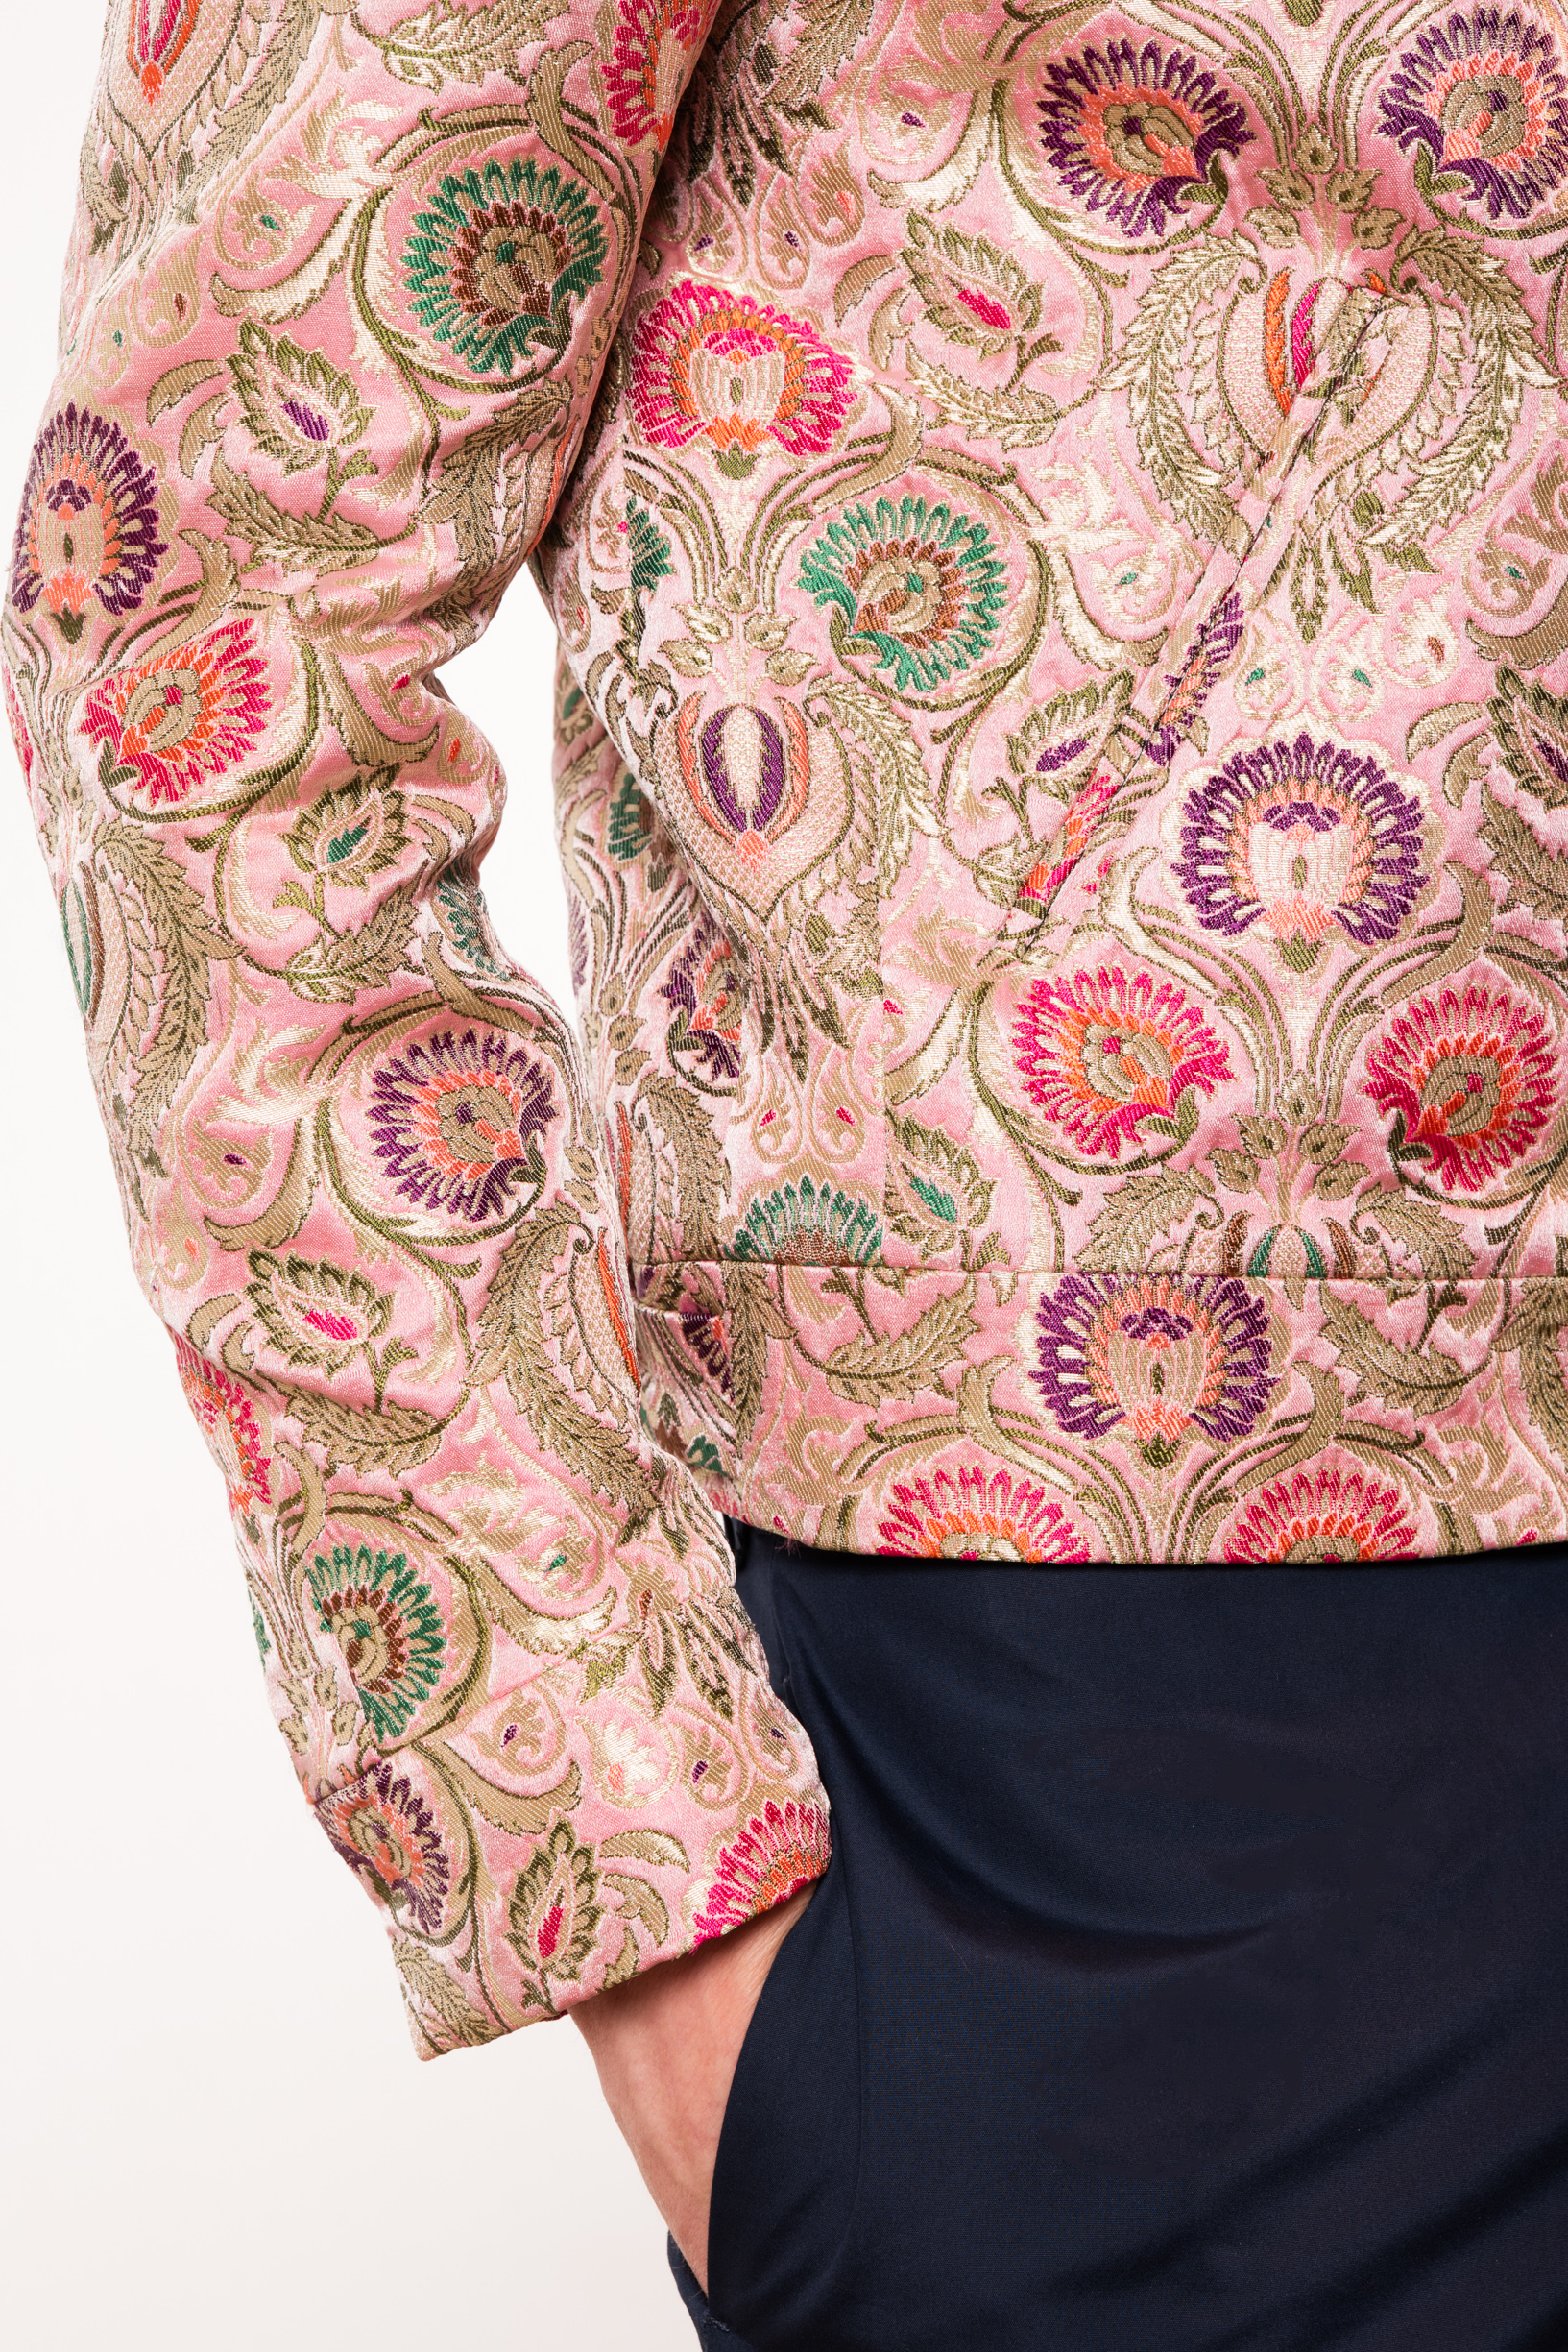 Sari bomber pink brocade Shirting shorts navy